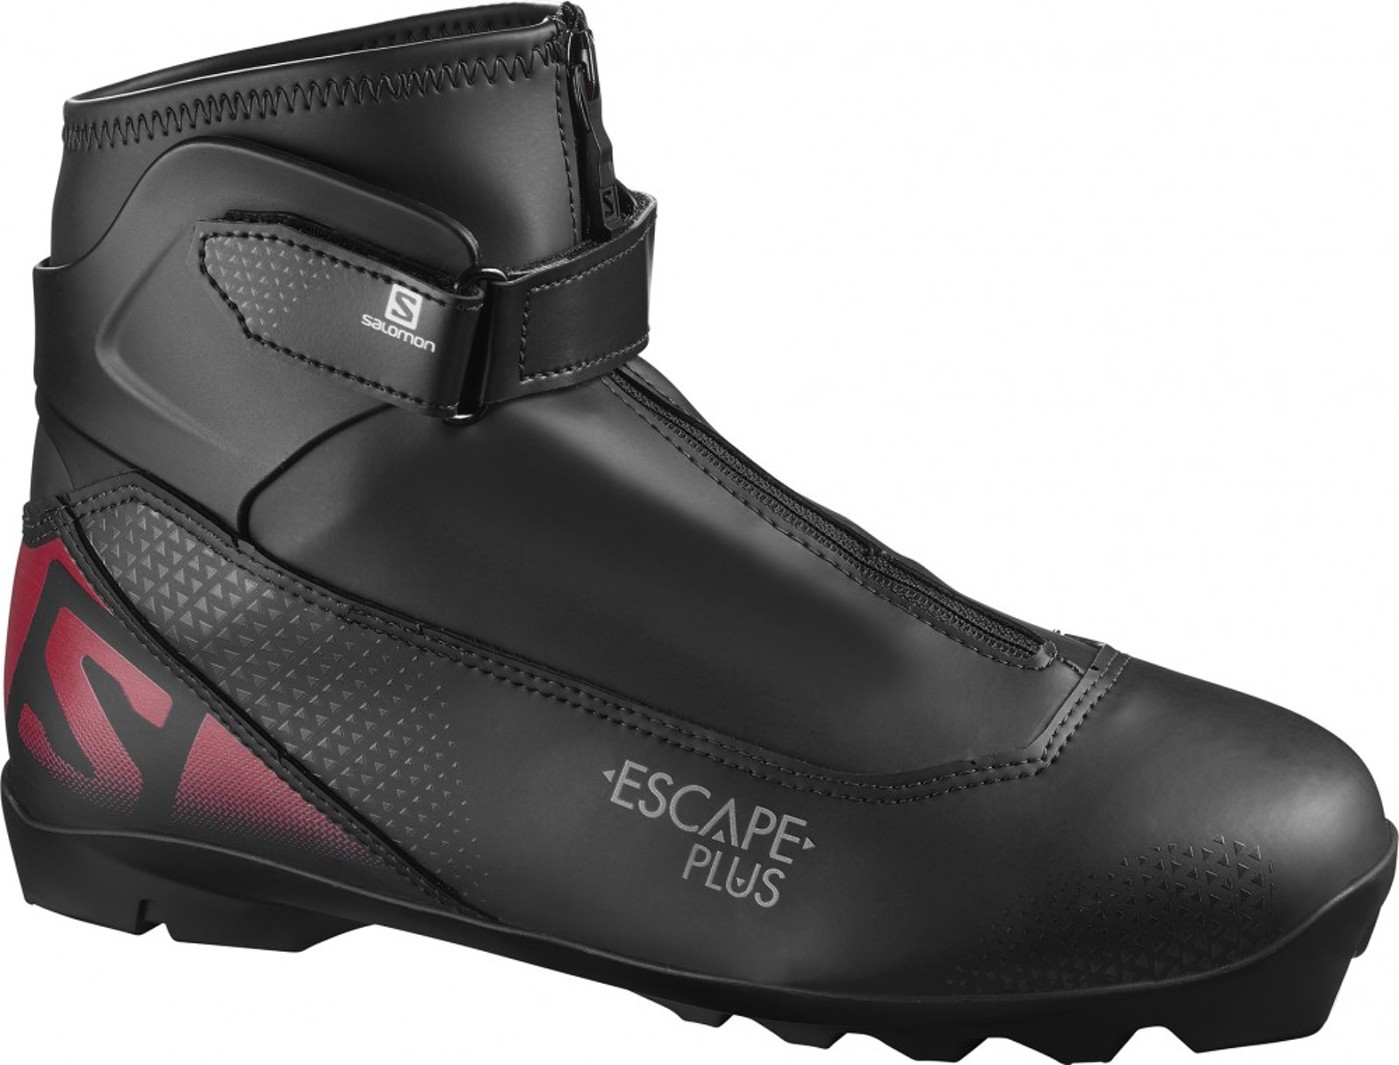 SALOMON XC Schuhe ESCAPE PLUS PROLINK - Herren